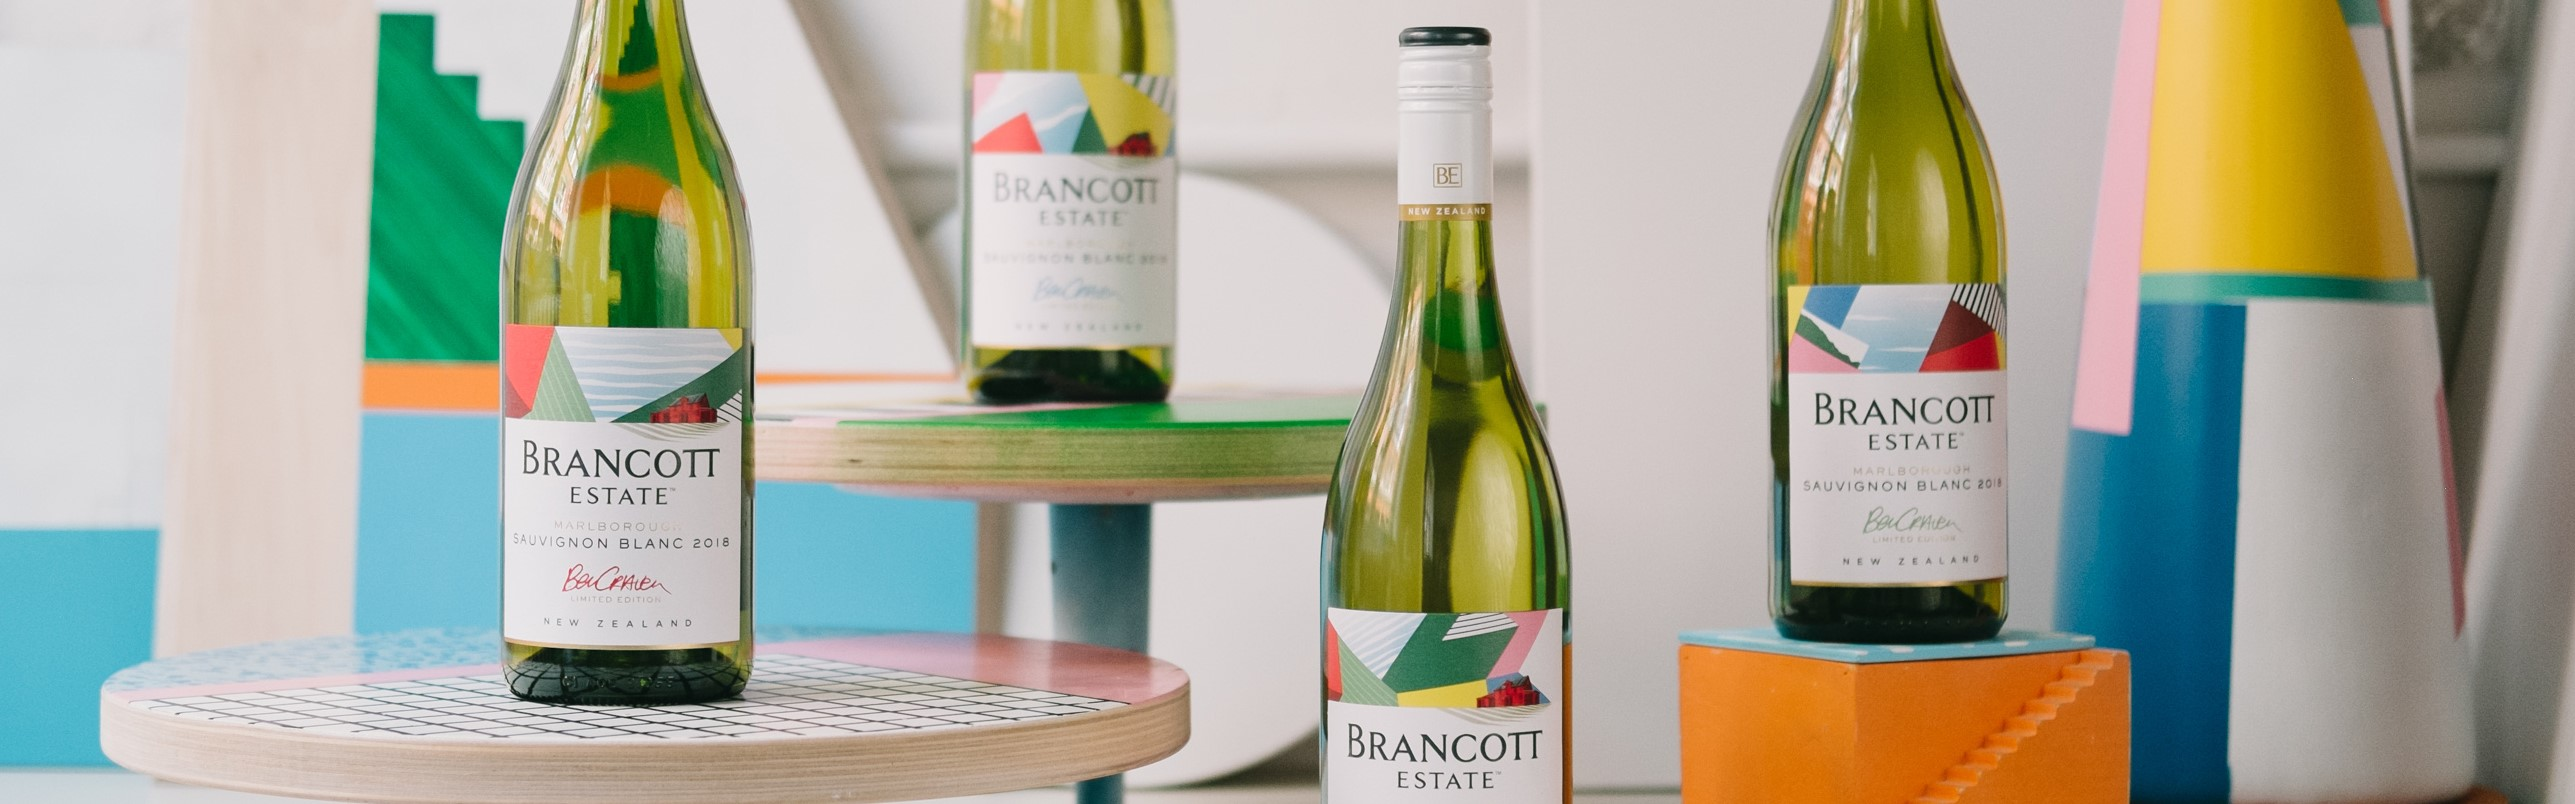 Banner image of Brancott Estates bottles